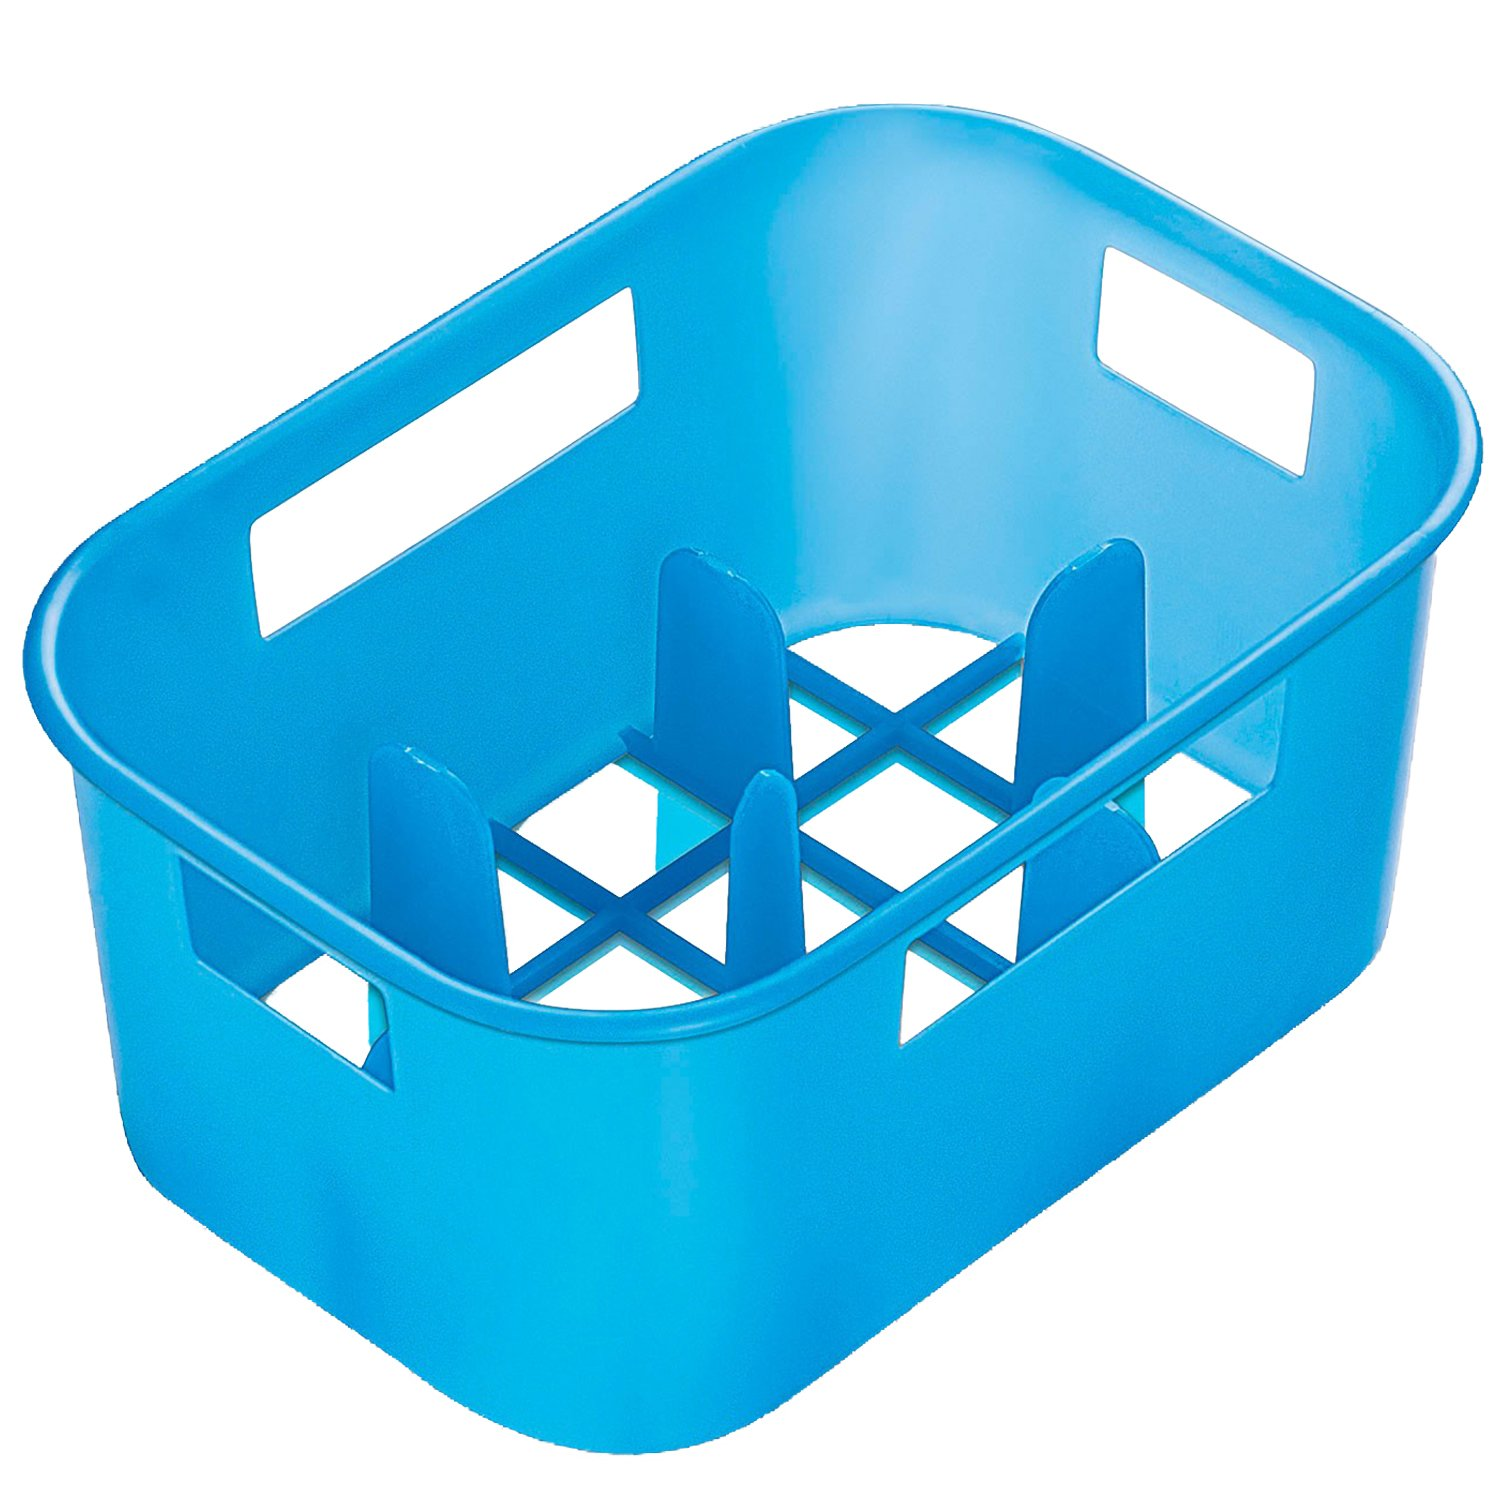 Reer 256.11 bottle crate, blue translucent